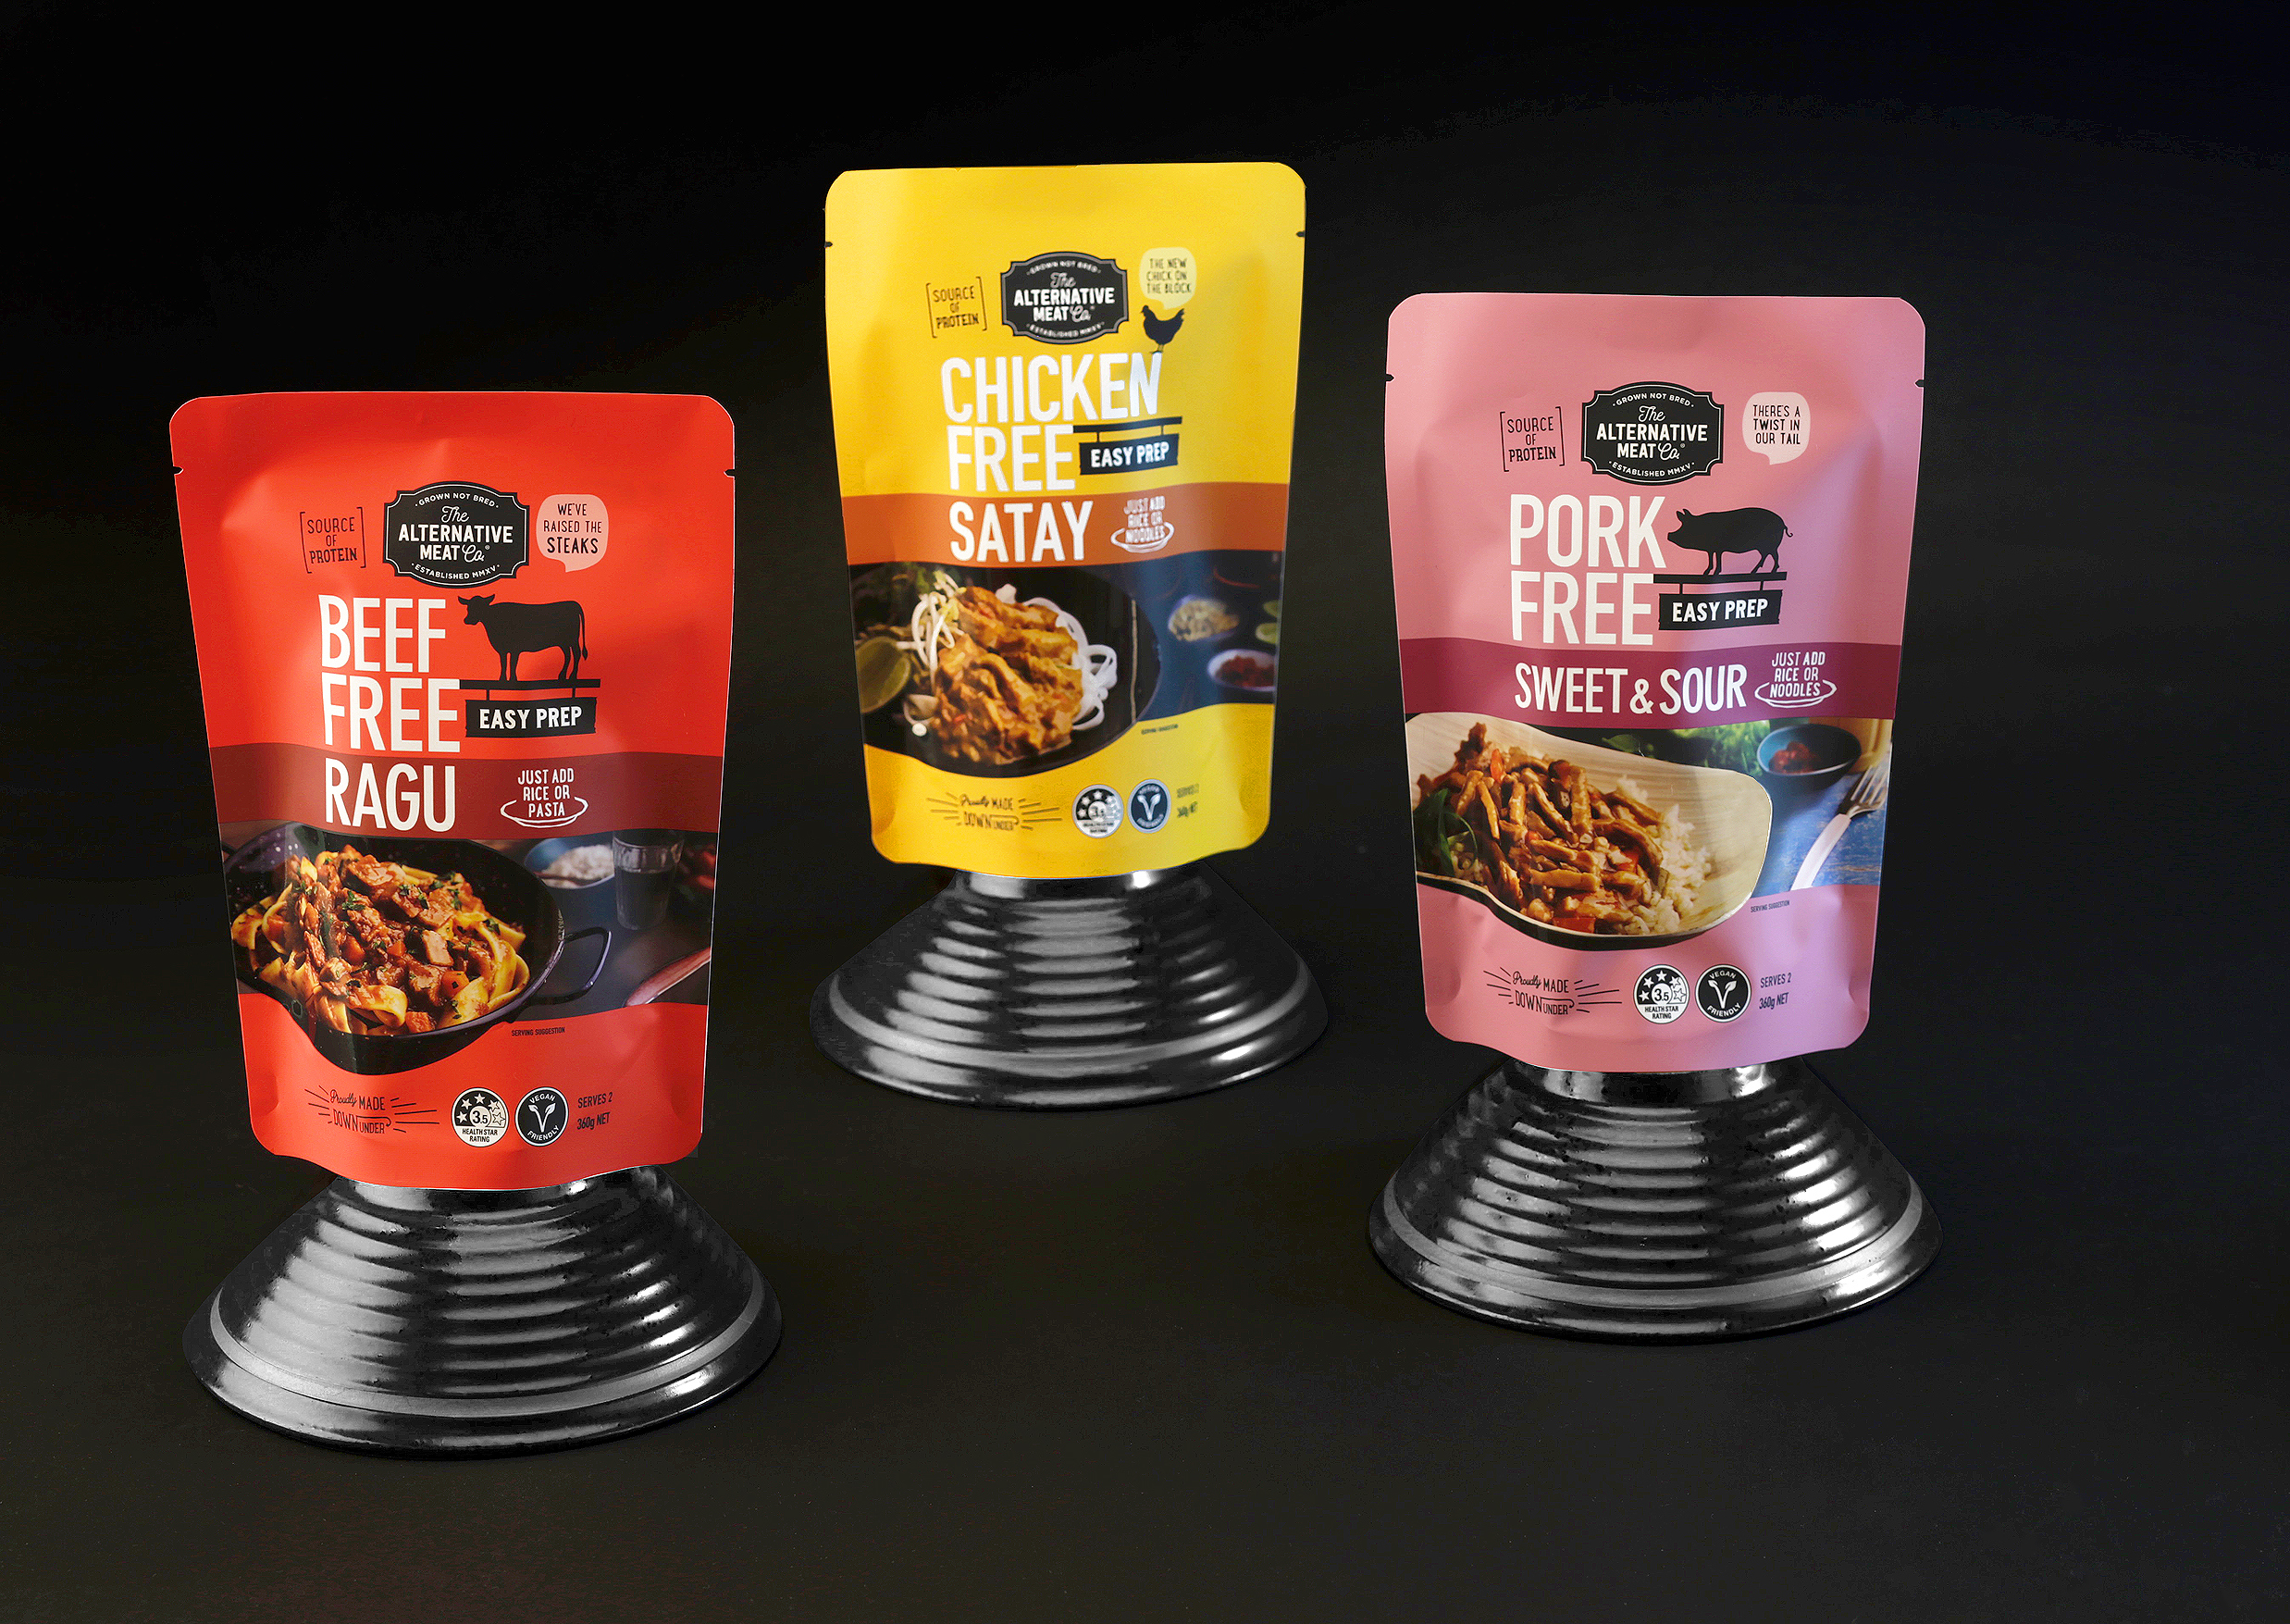 Packaging and Branding Design for Australasia's Leading Planted based Meat Brand